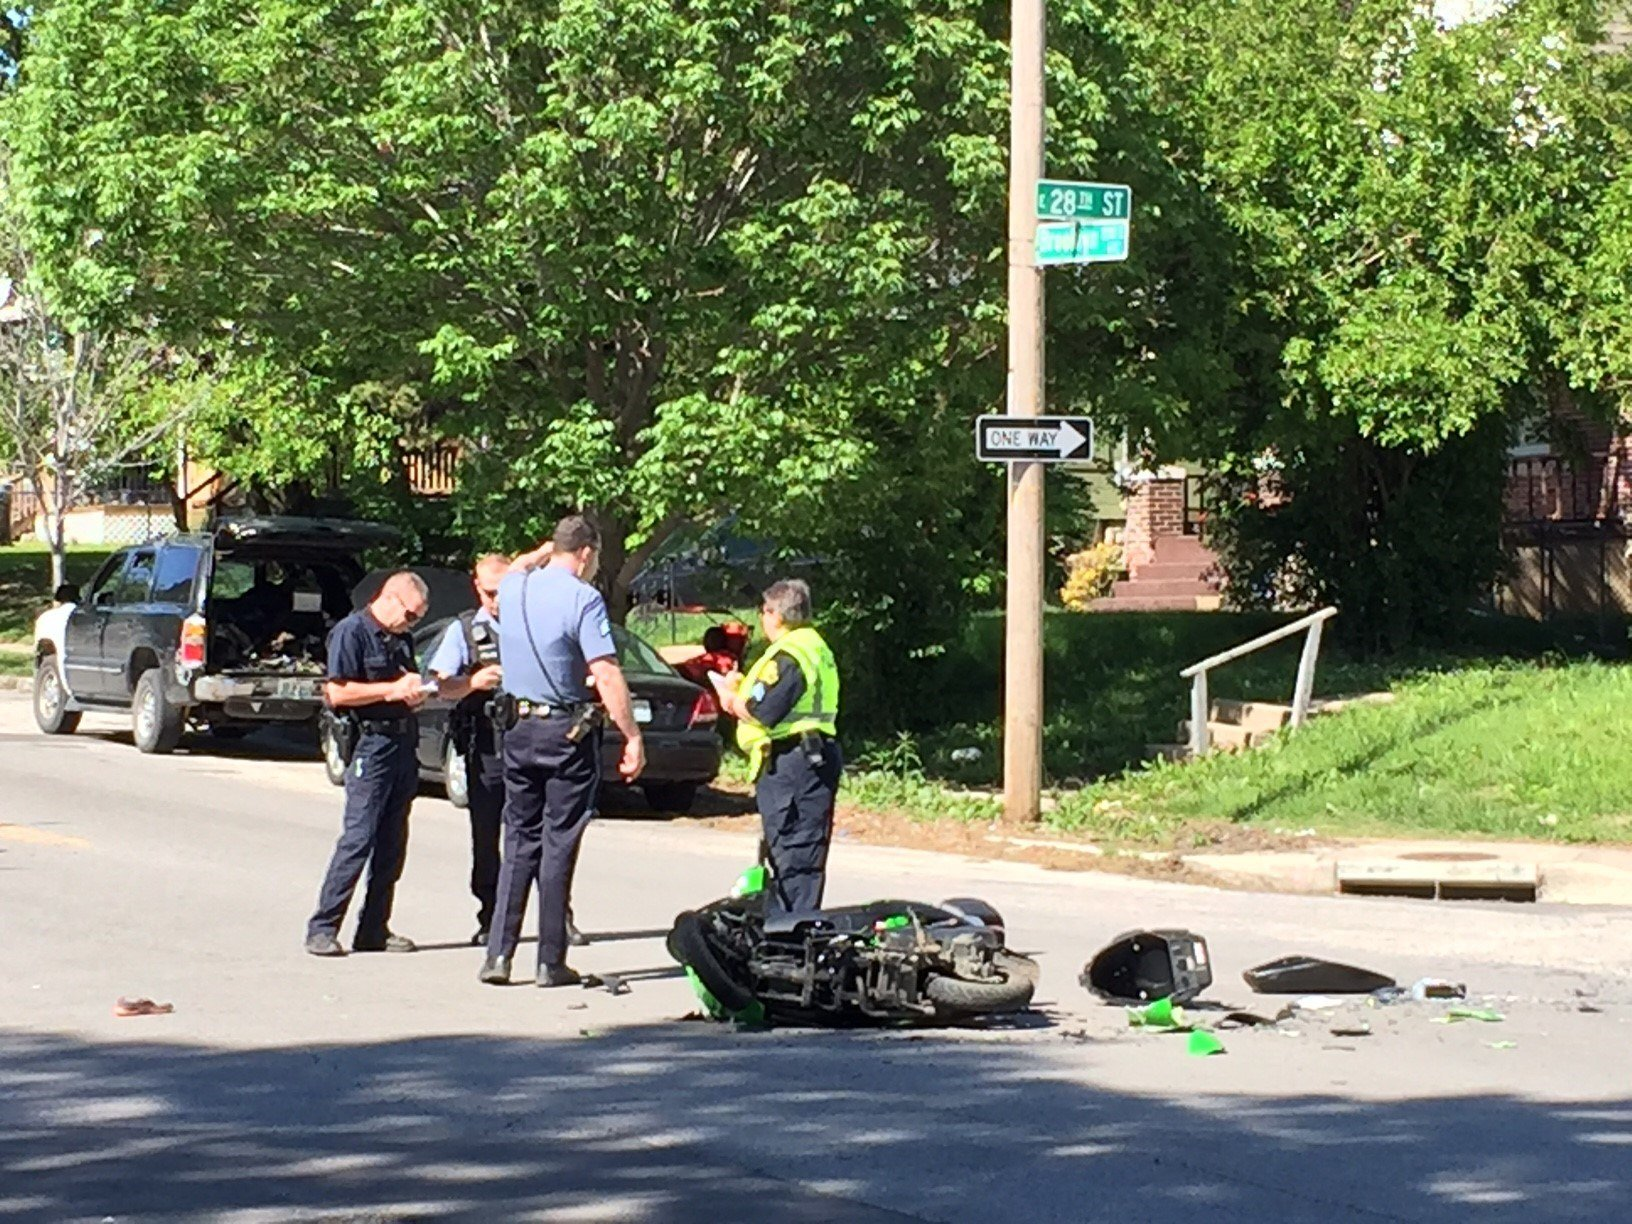 One woman was seriously injured after she was ejected from her moped and ended up in the backseat of a van. (KCTV)